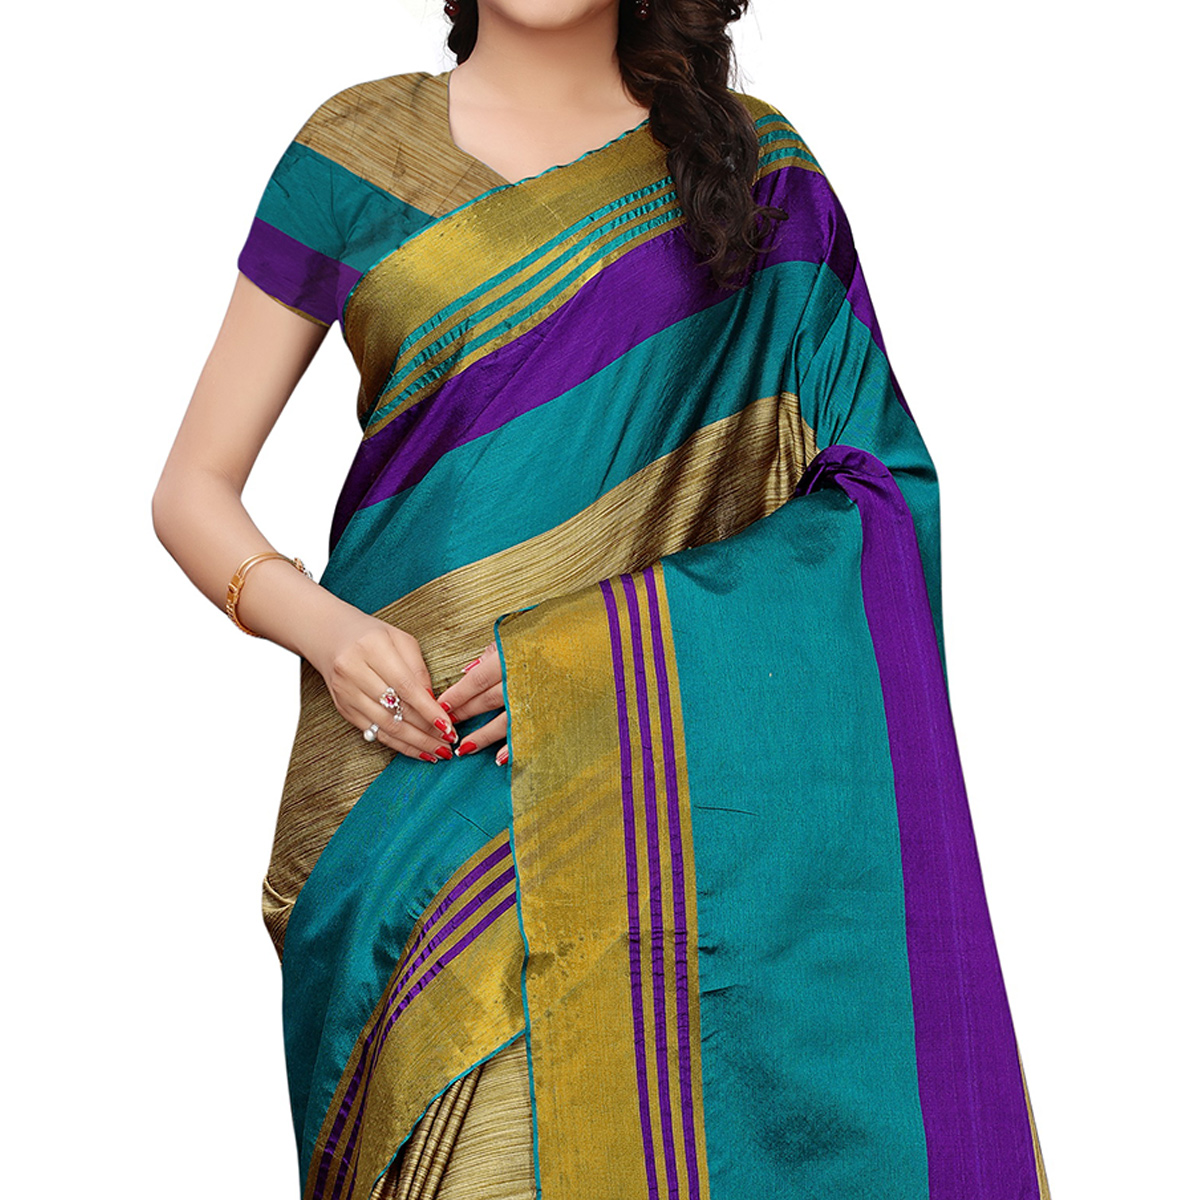 Alluring Chikoo-Teal Blue Colored Festive Wear Tussar Silk Saree